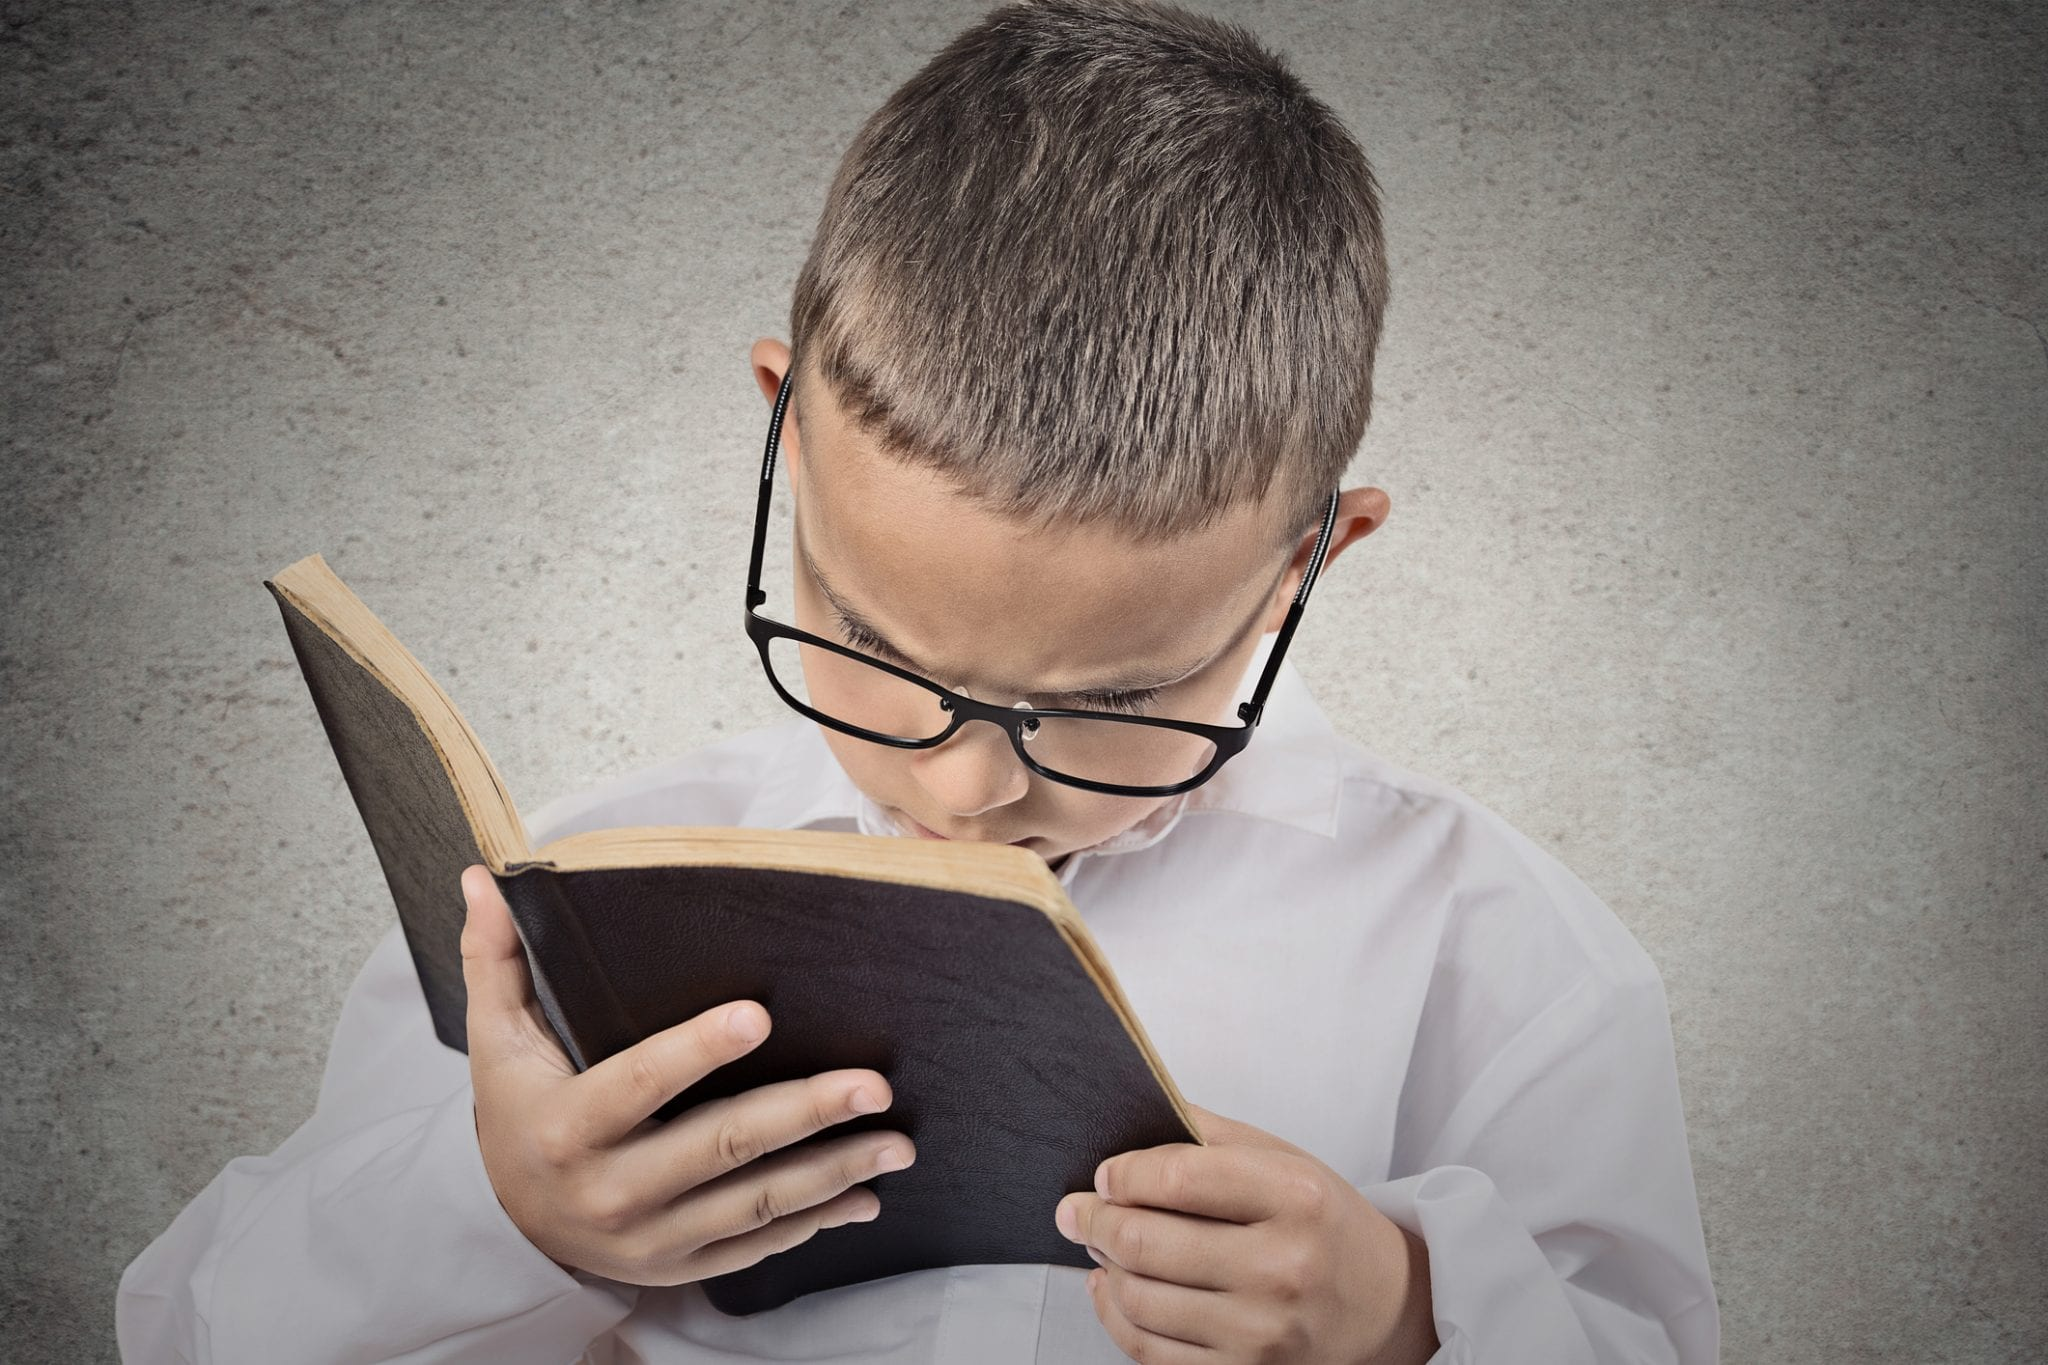 Signs of Vision Problems in Children